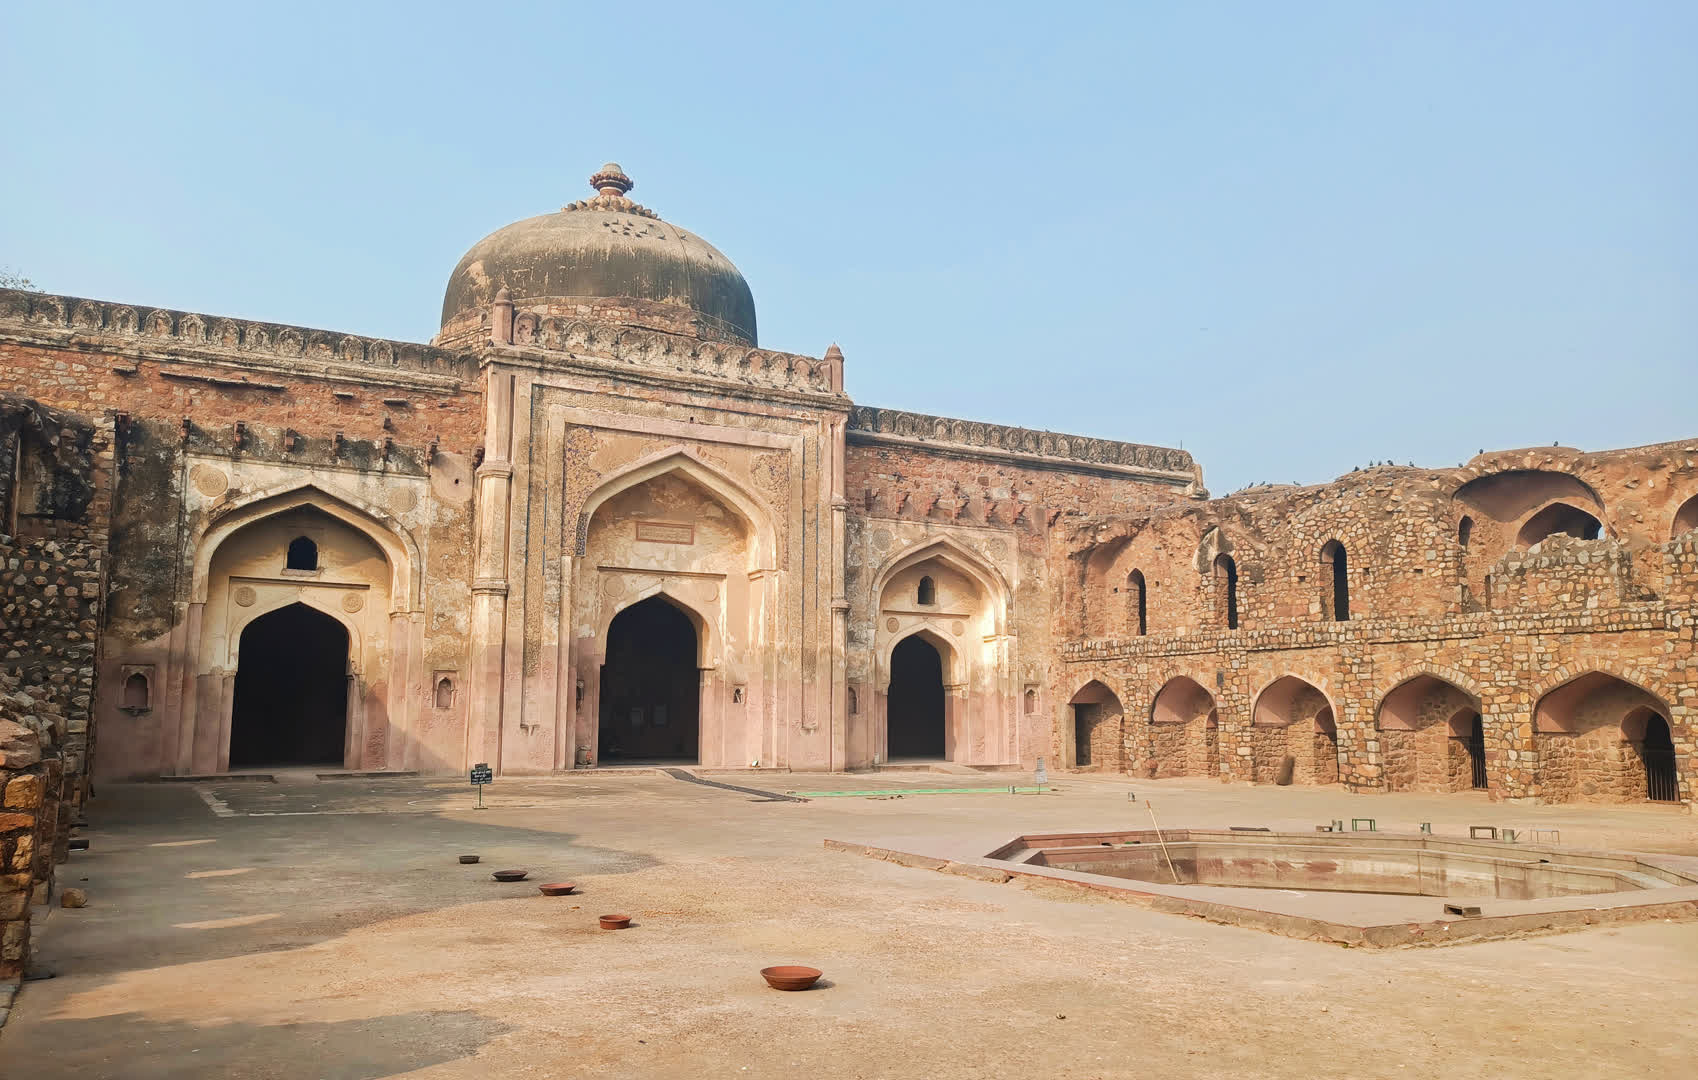 The Madrasa buildings with windows on the right